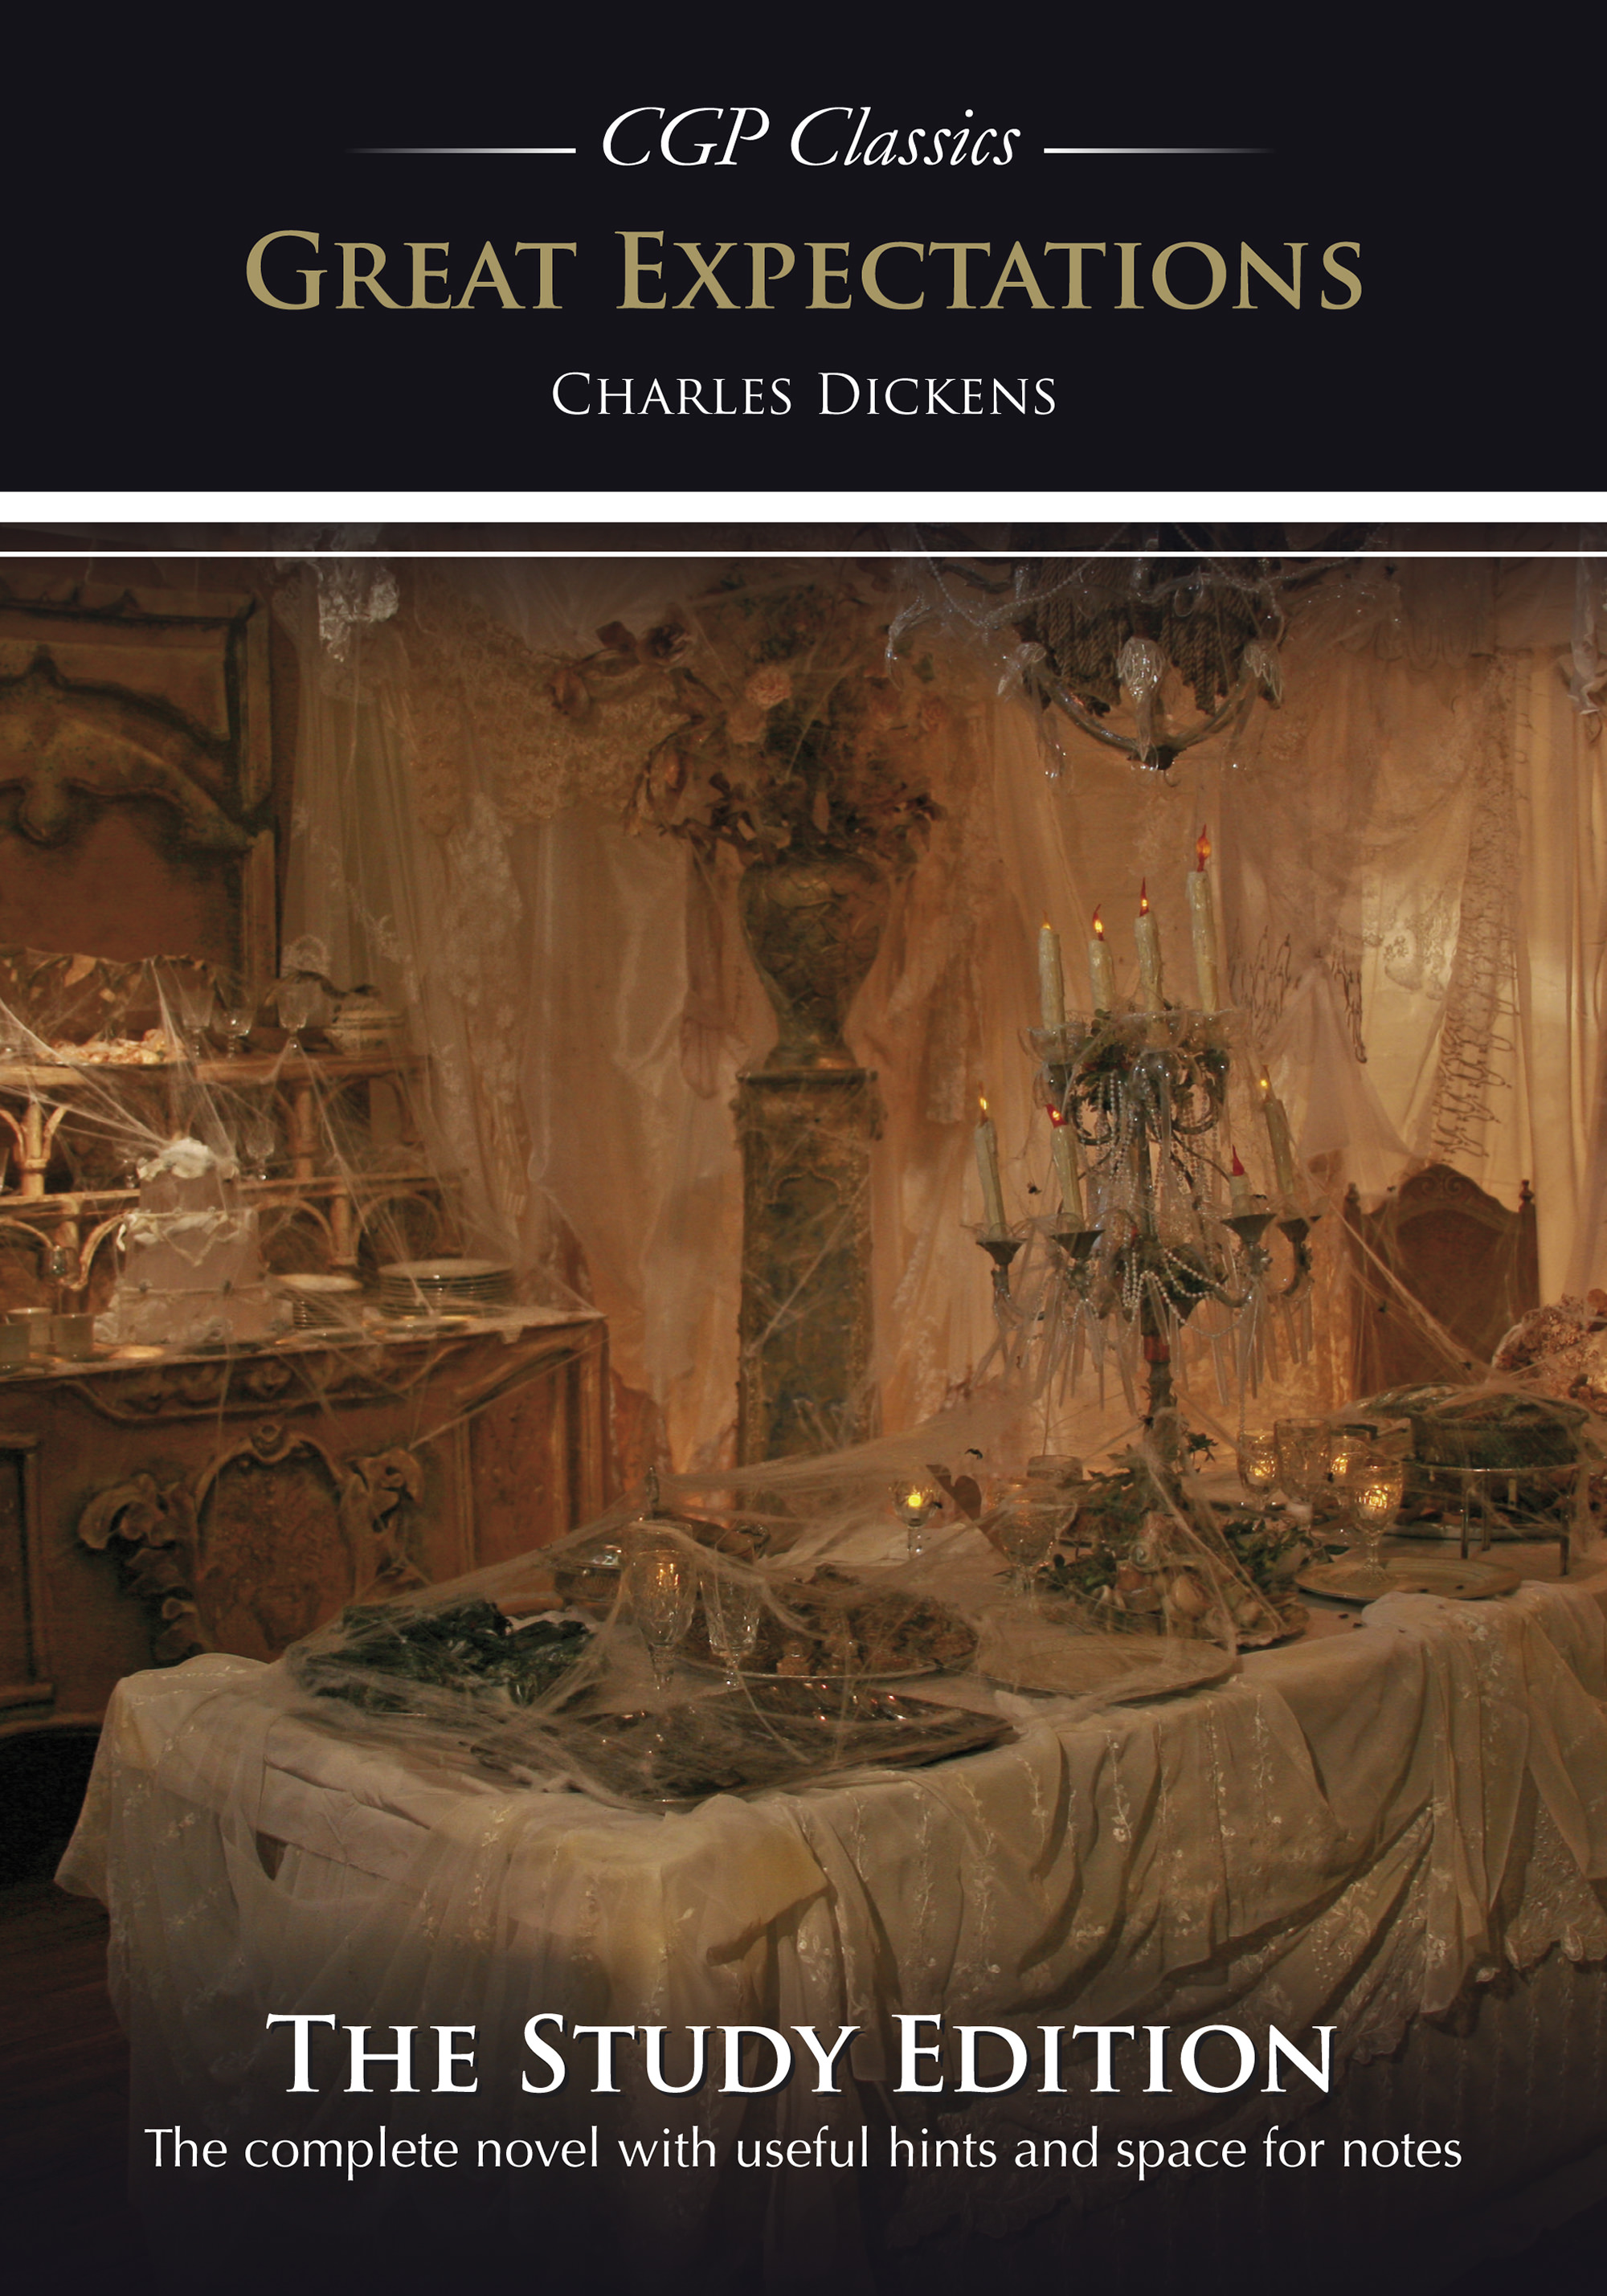 ENG41 - Great Expectations by Charles Dickens Study Edition